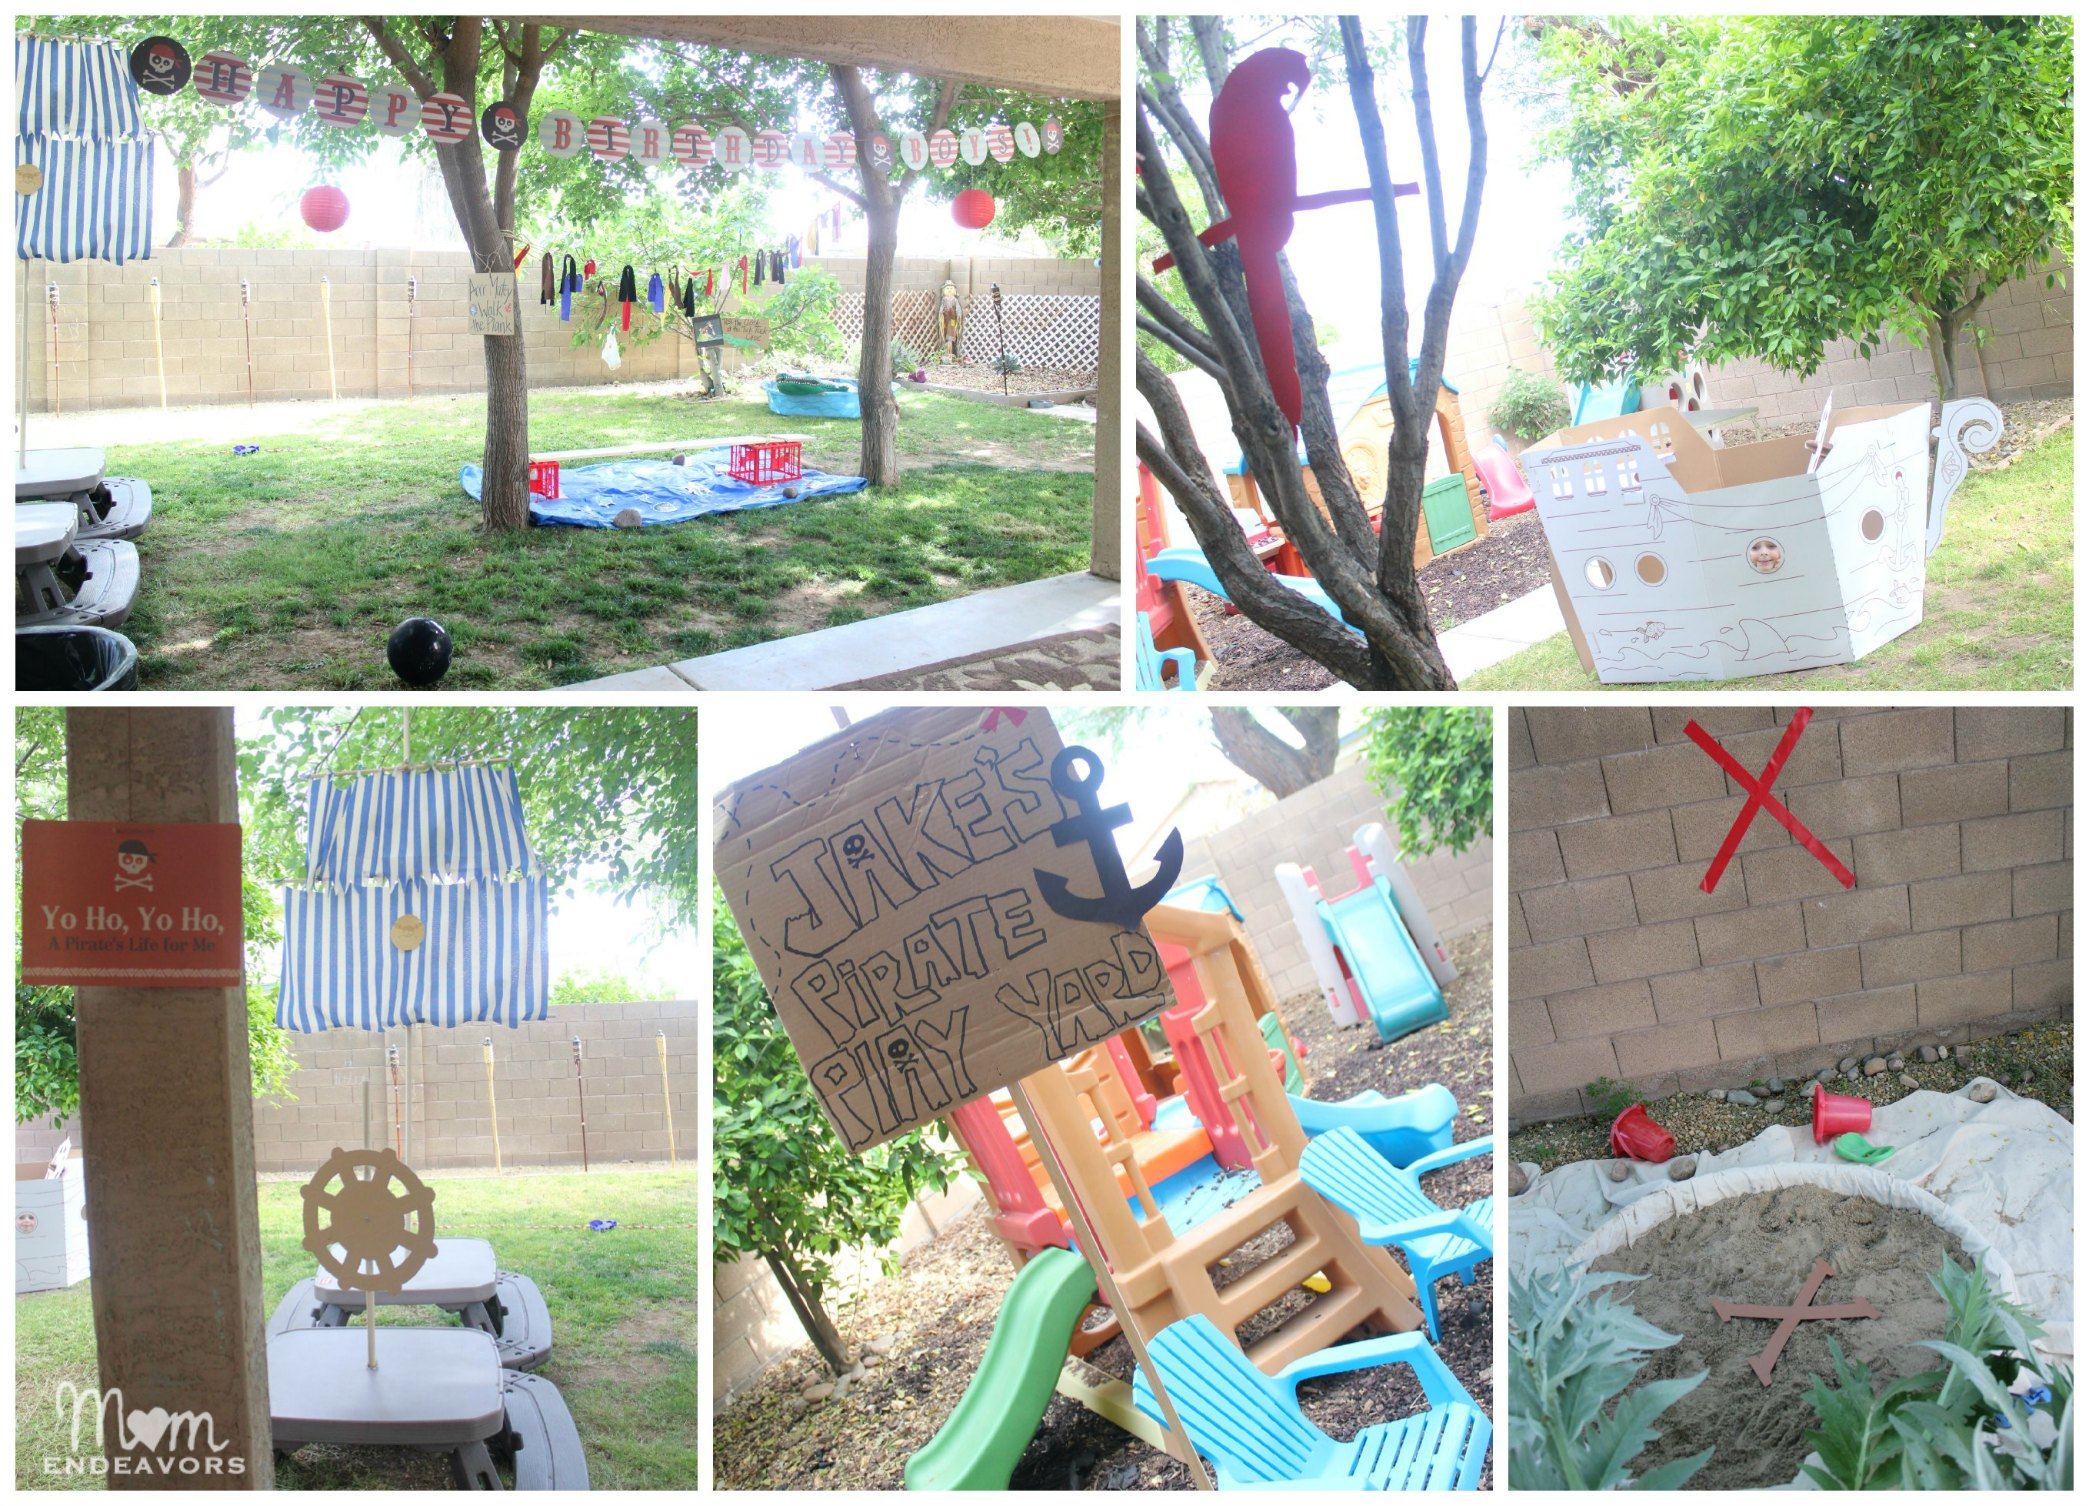 Jake and the never land pirates birthday party - Outdoor decorating ideas ...